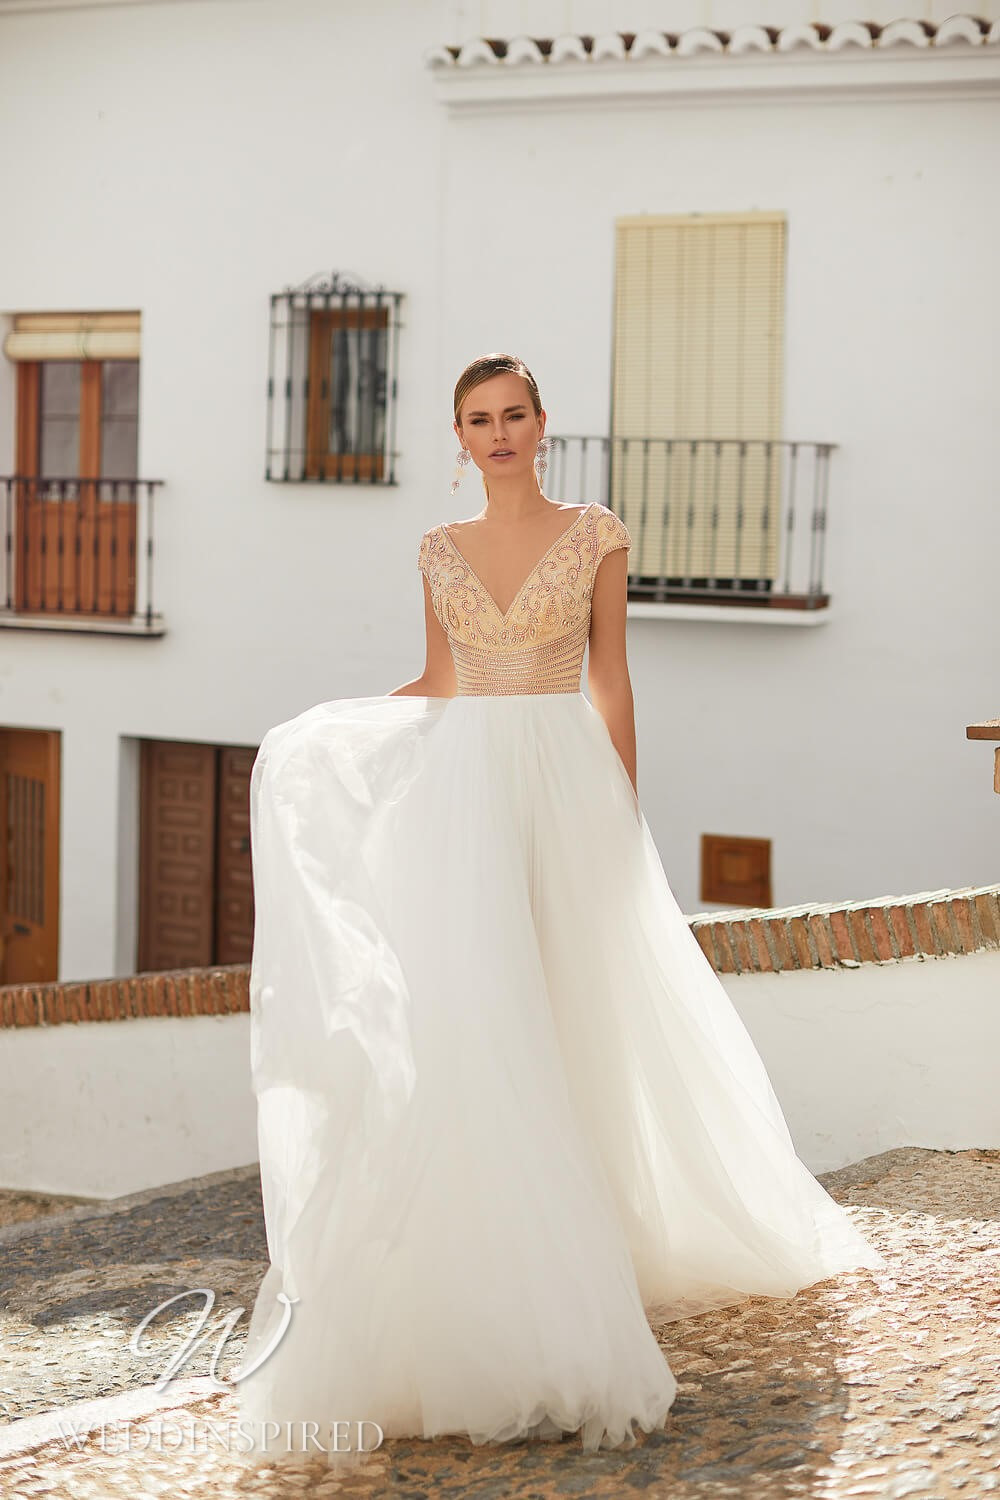 An Essential by Lussano 2021 tulle A-line wedding dress